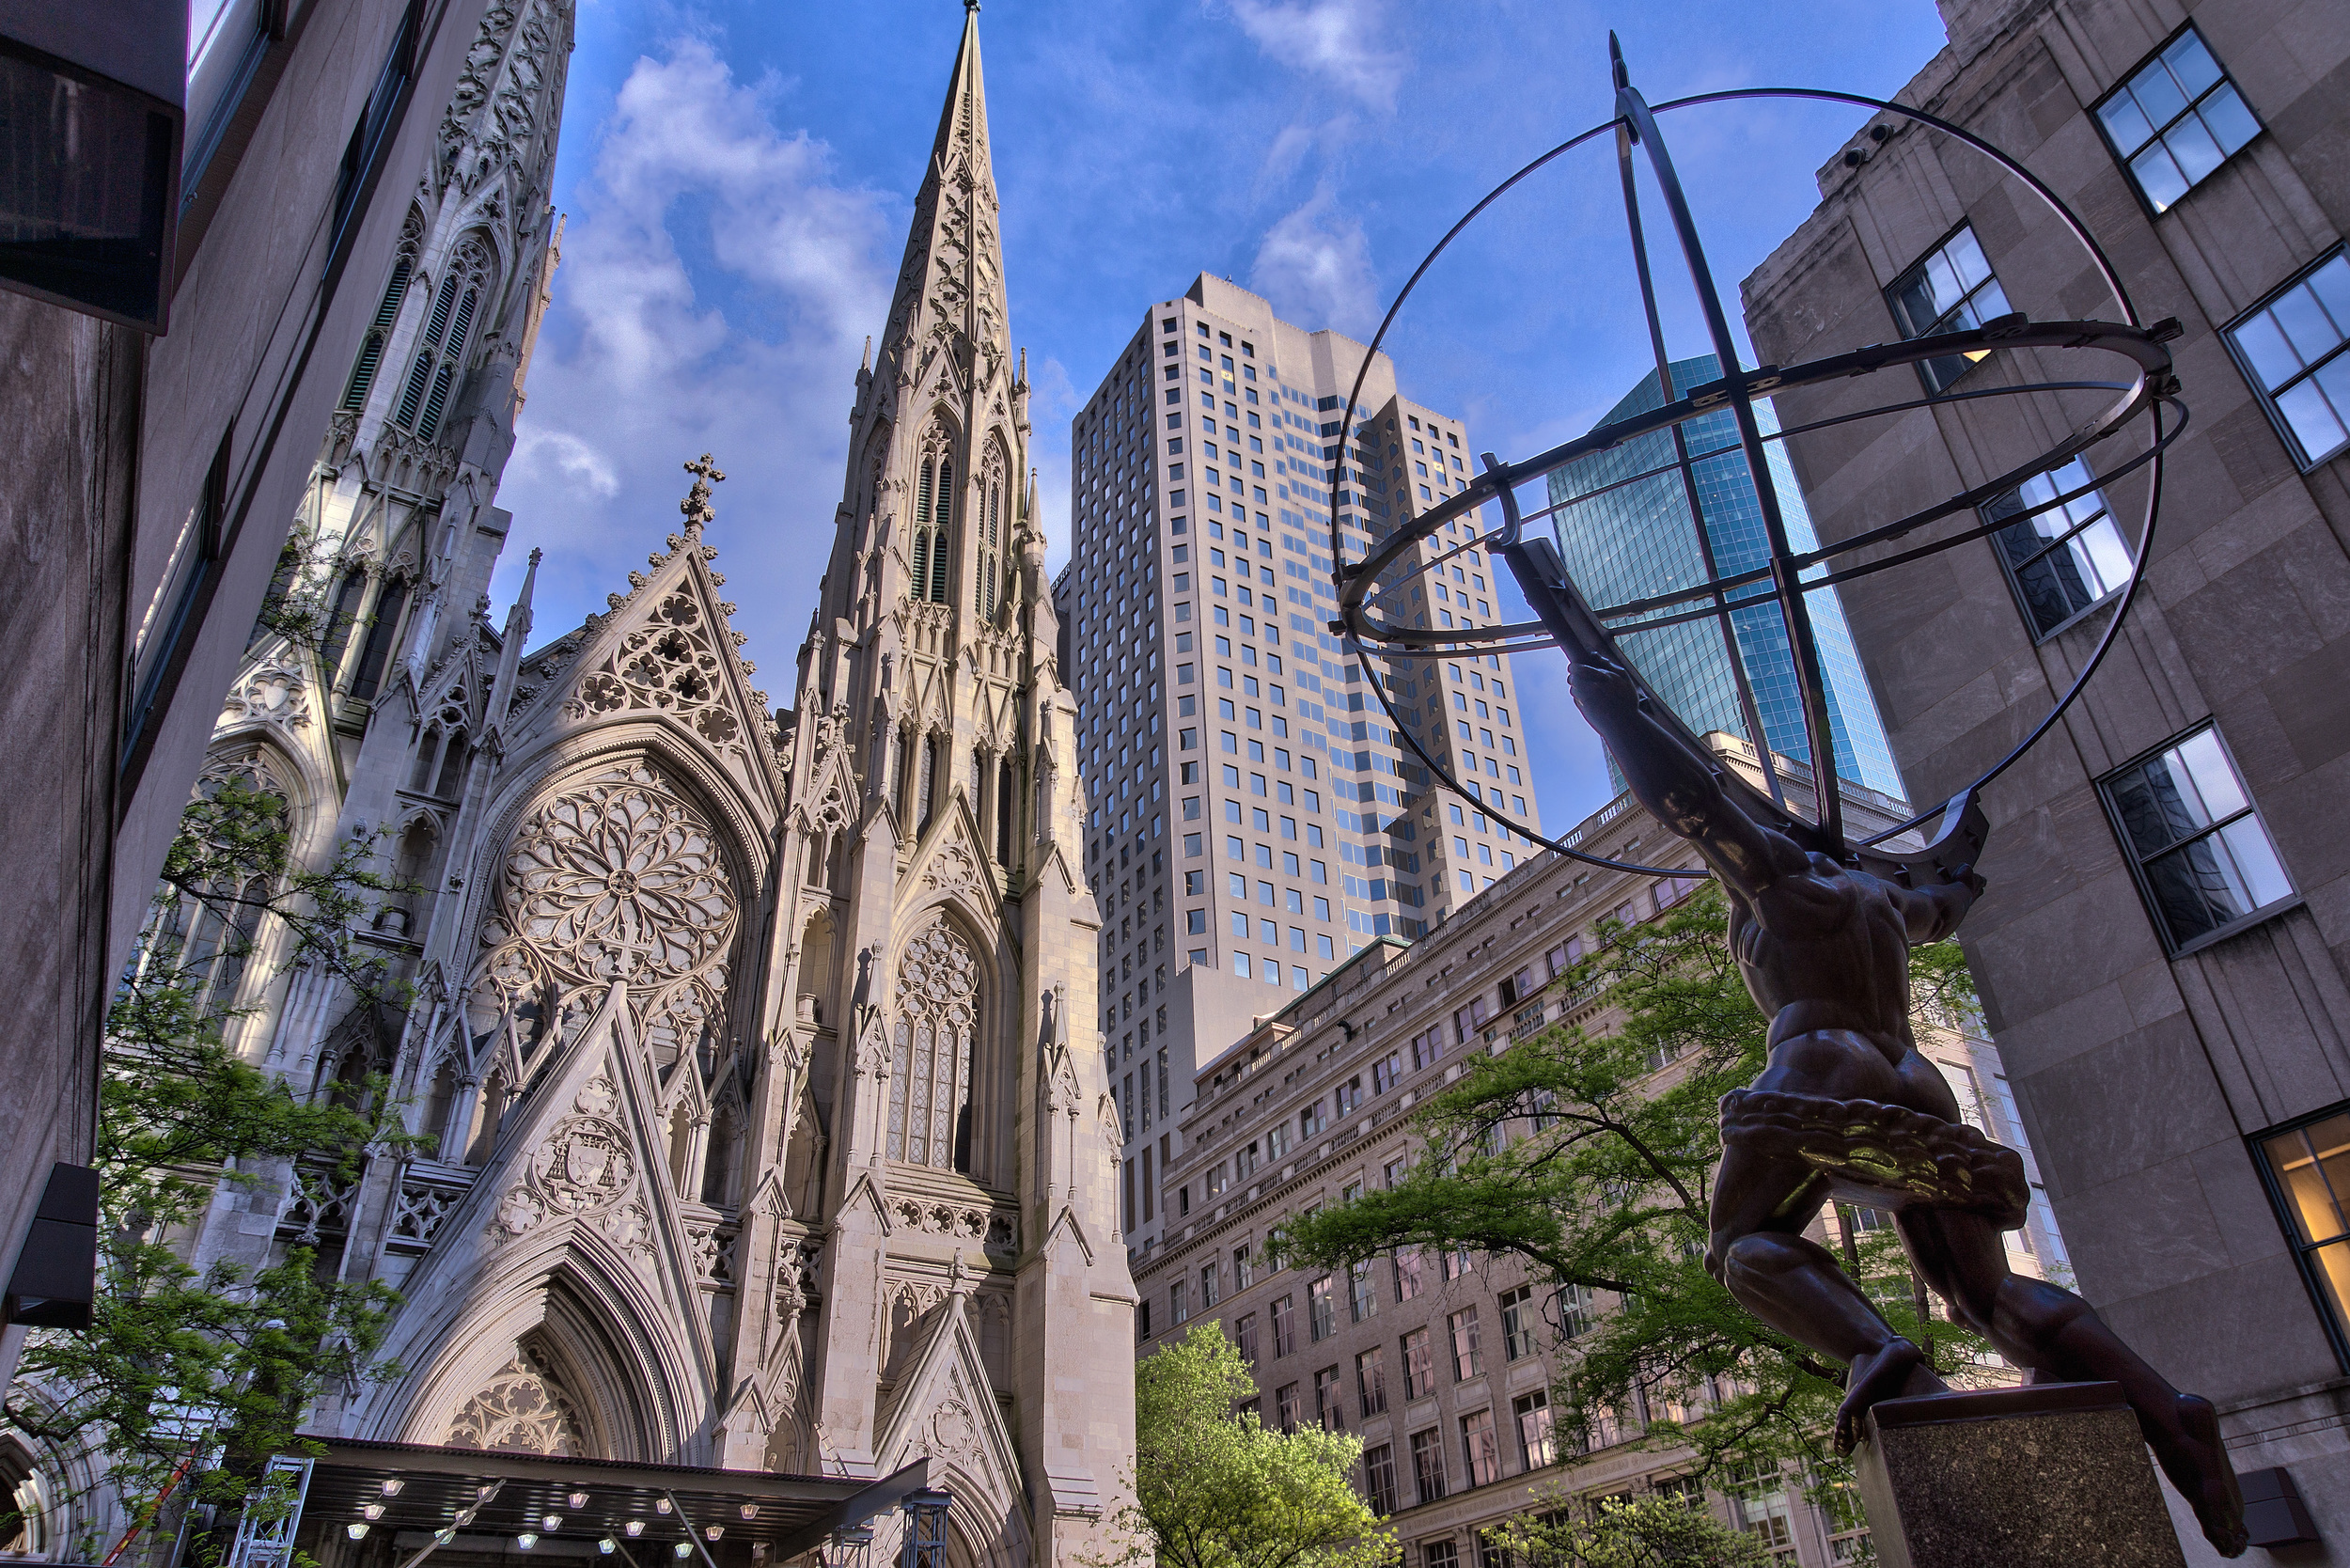 NYC_-_St_Patrick_Cathedral_-_Facade_and_Atlas.jpg